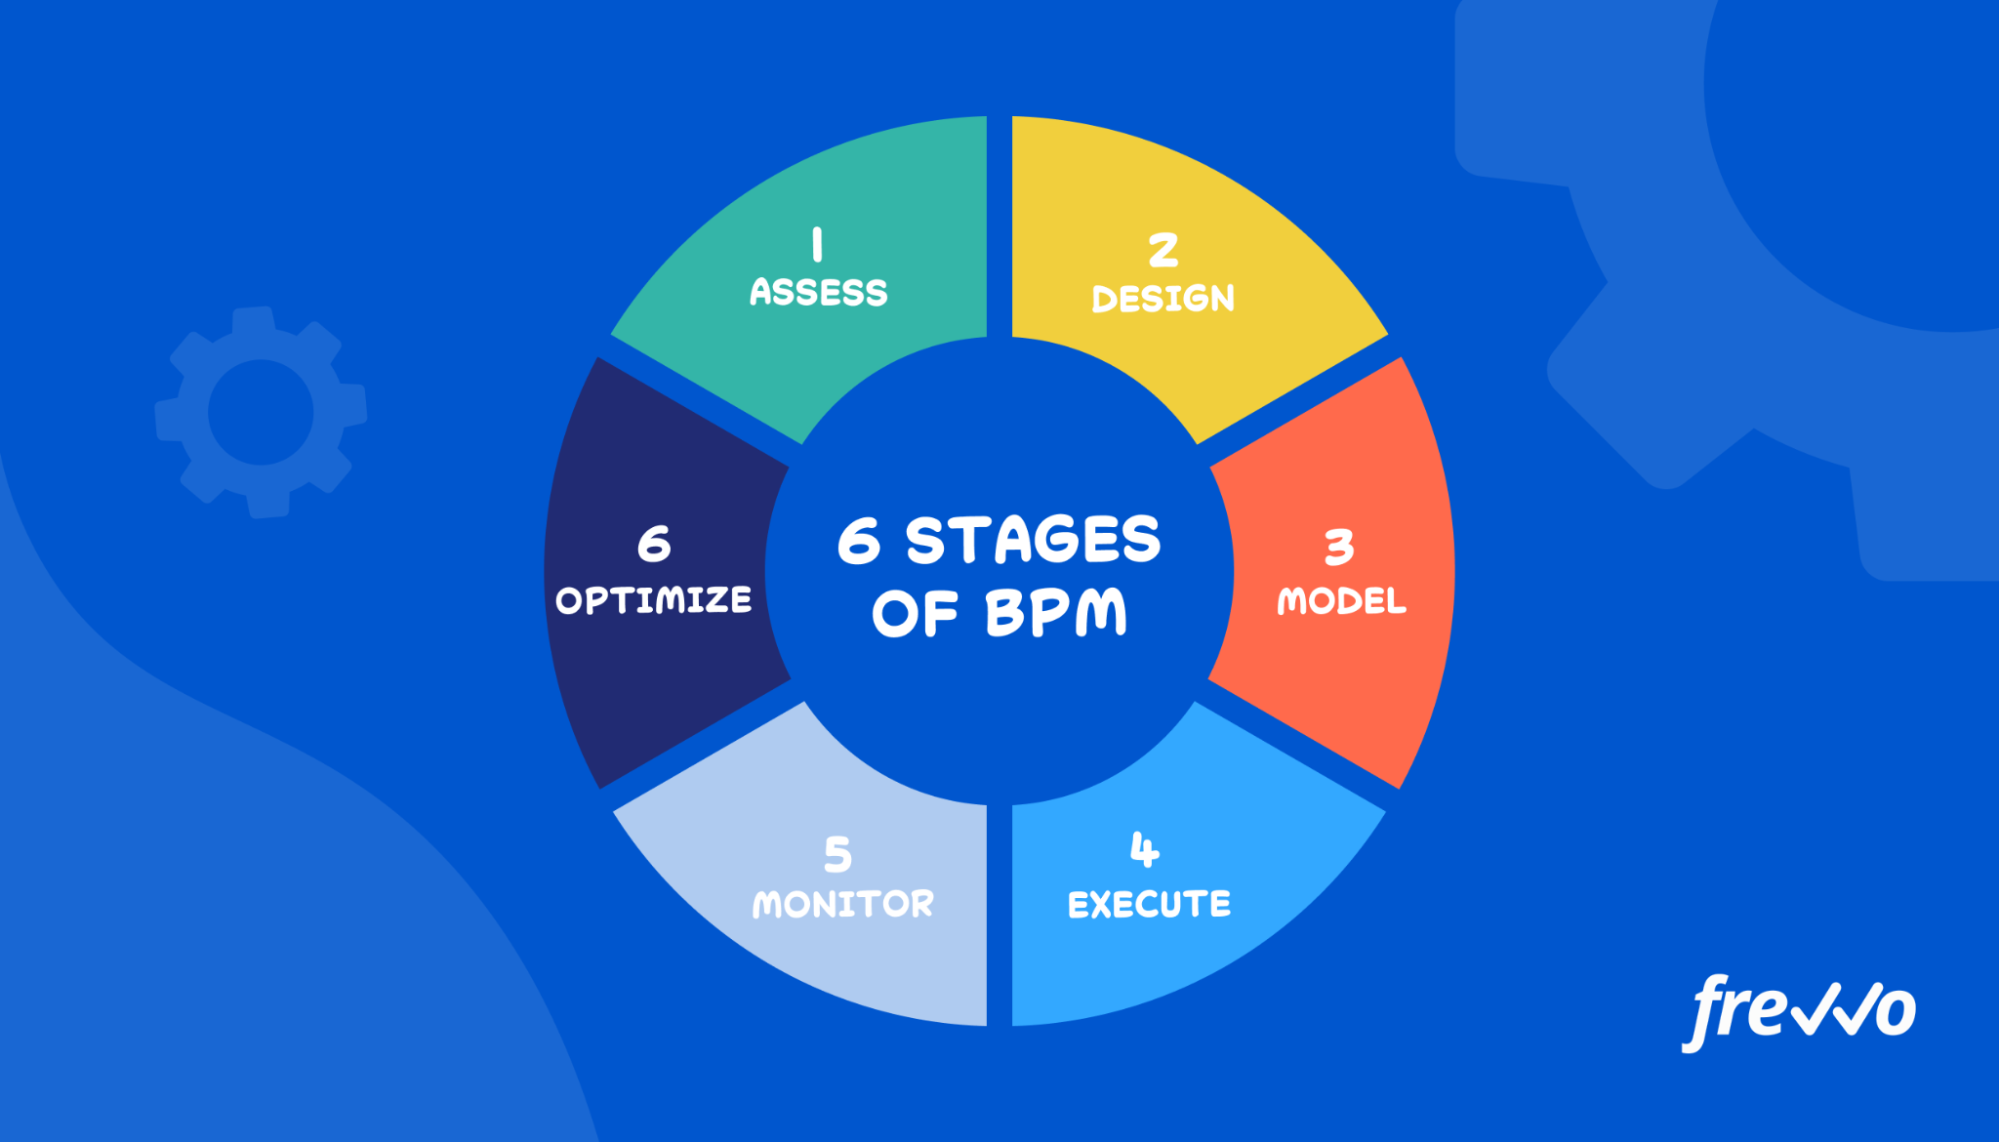 6 main stages of BPM